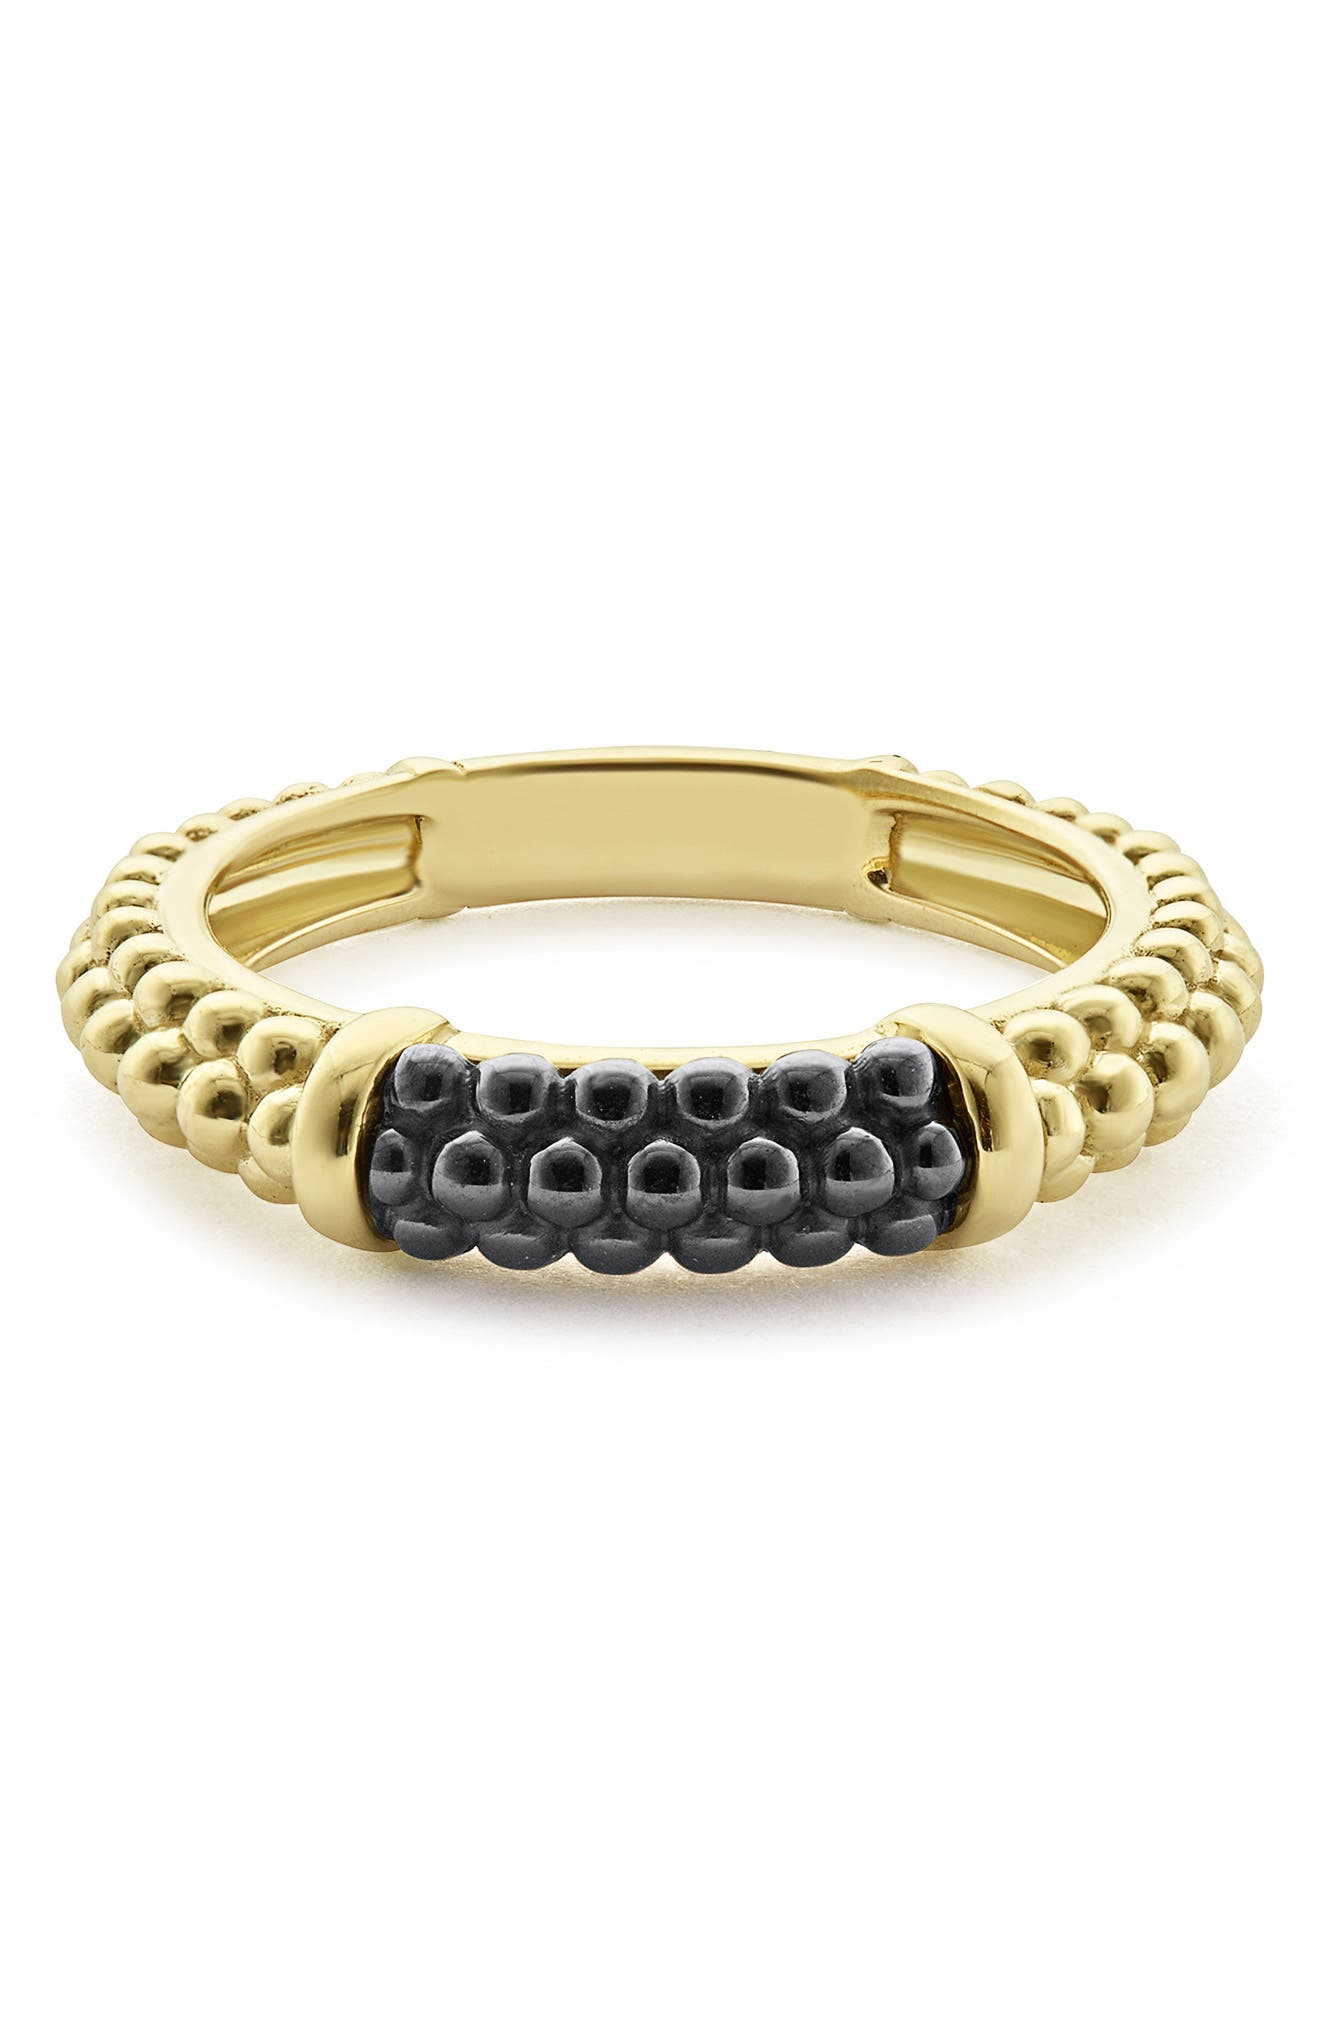 Gold & Black Caviar Stacking Ring,                             Alternate thumbnail 5, color,                             Gold